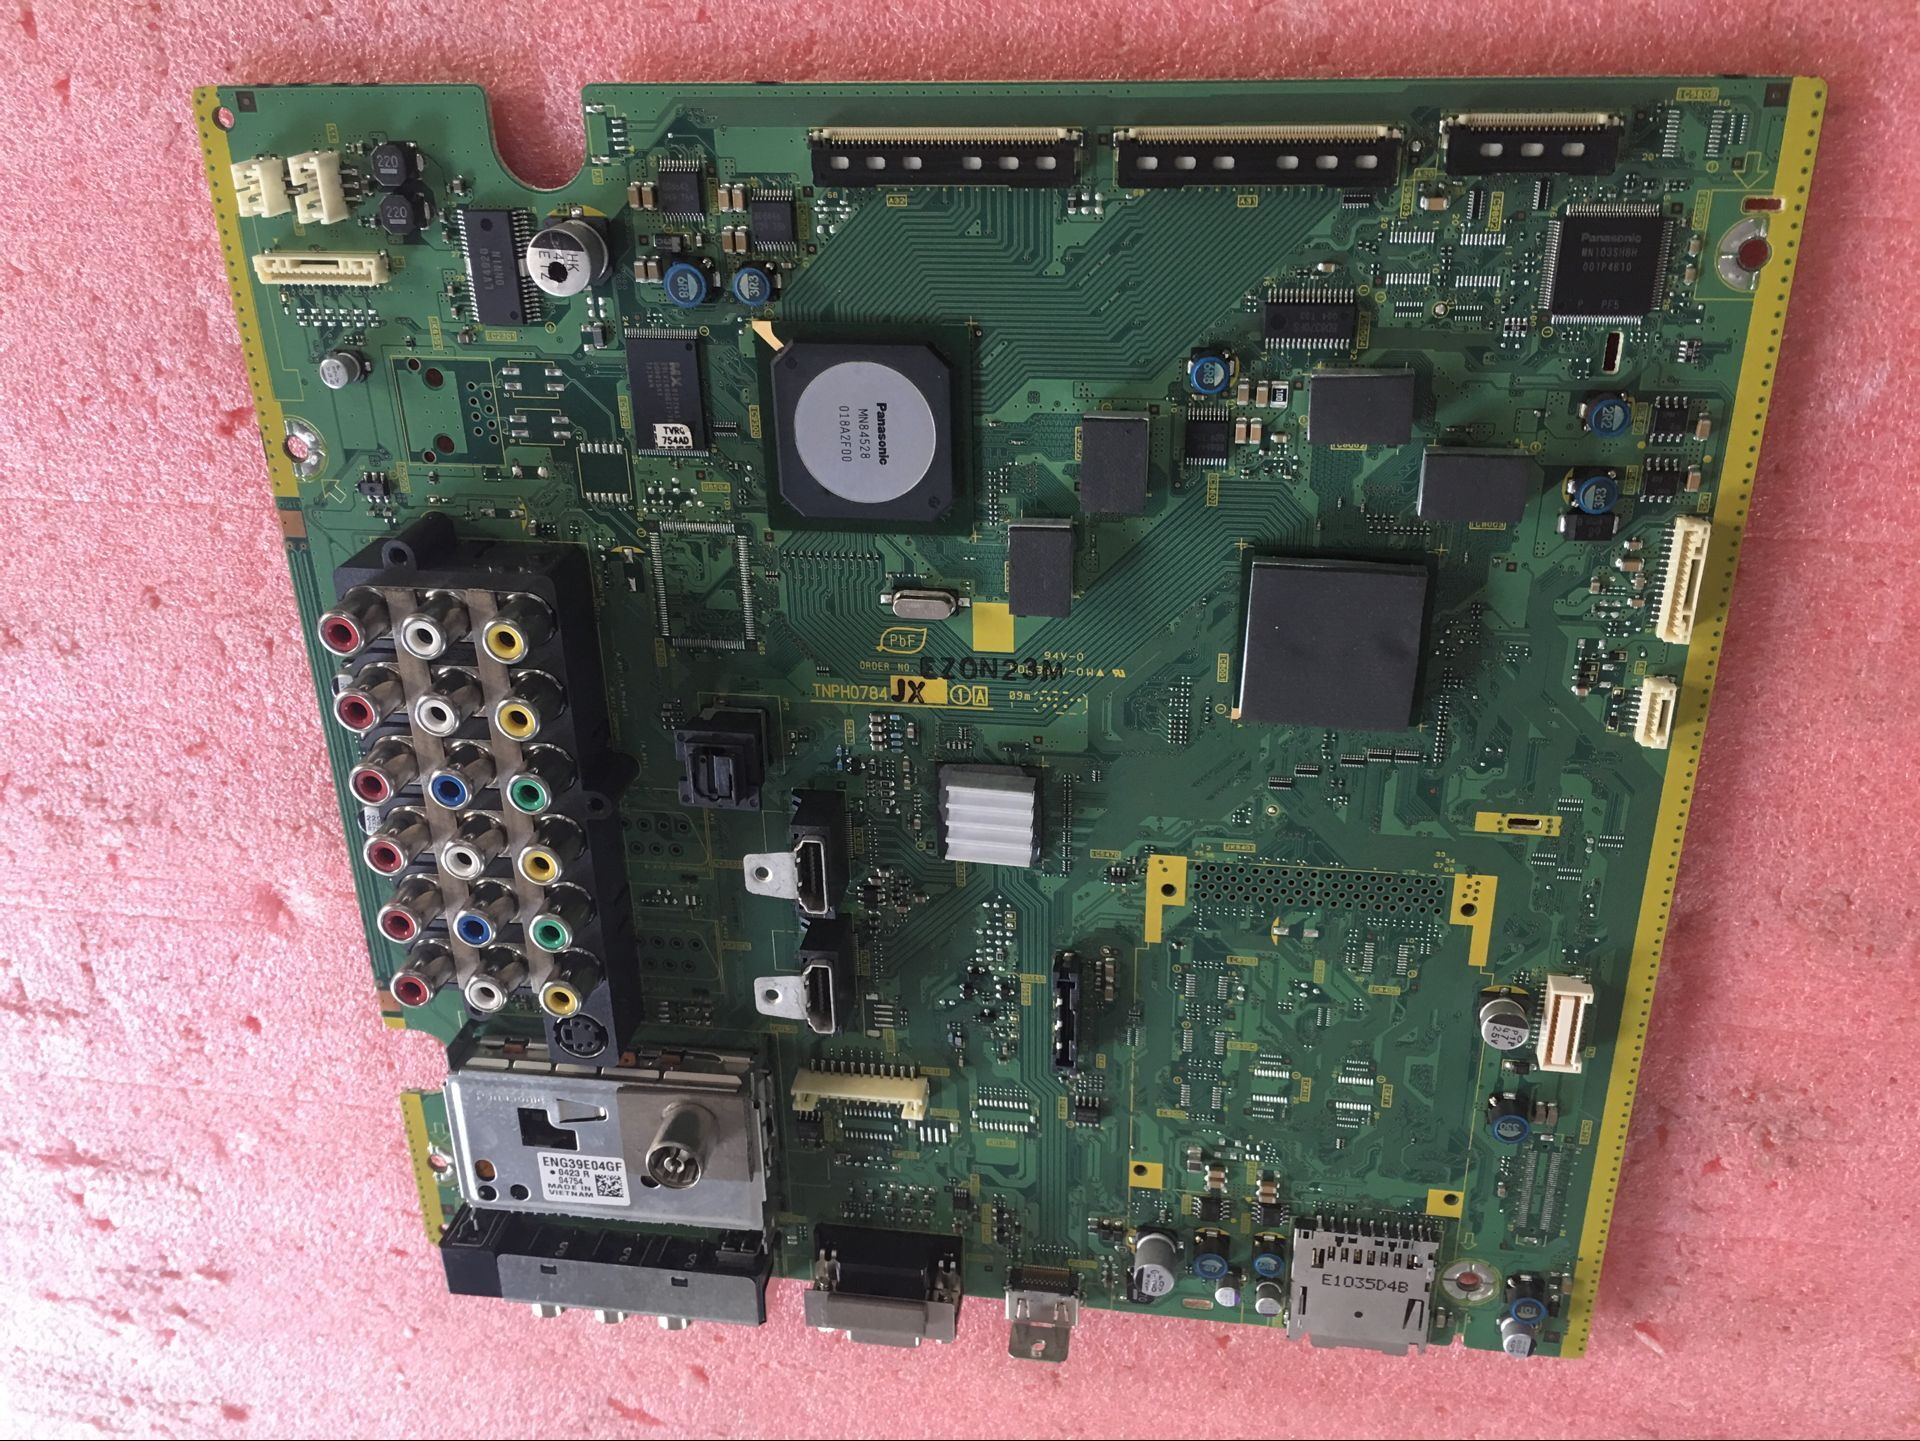 Original Panasonic TH-P50G11C TH-P46G11C TNPH0784JX A board main